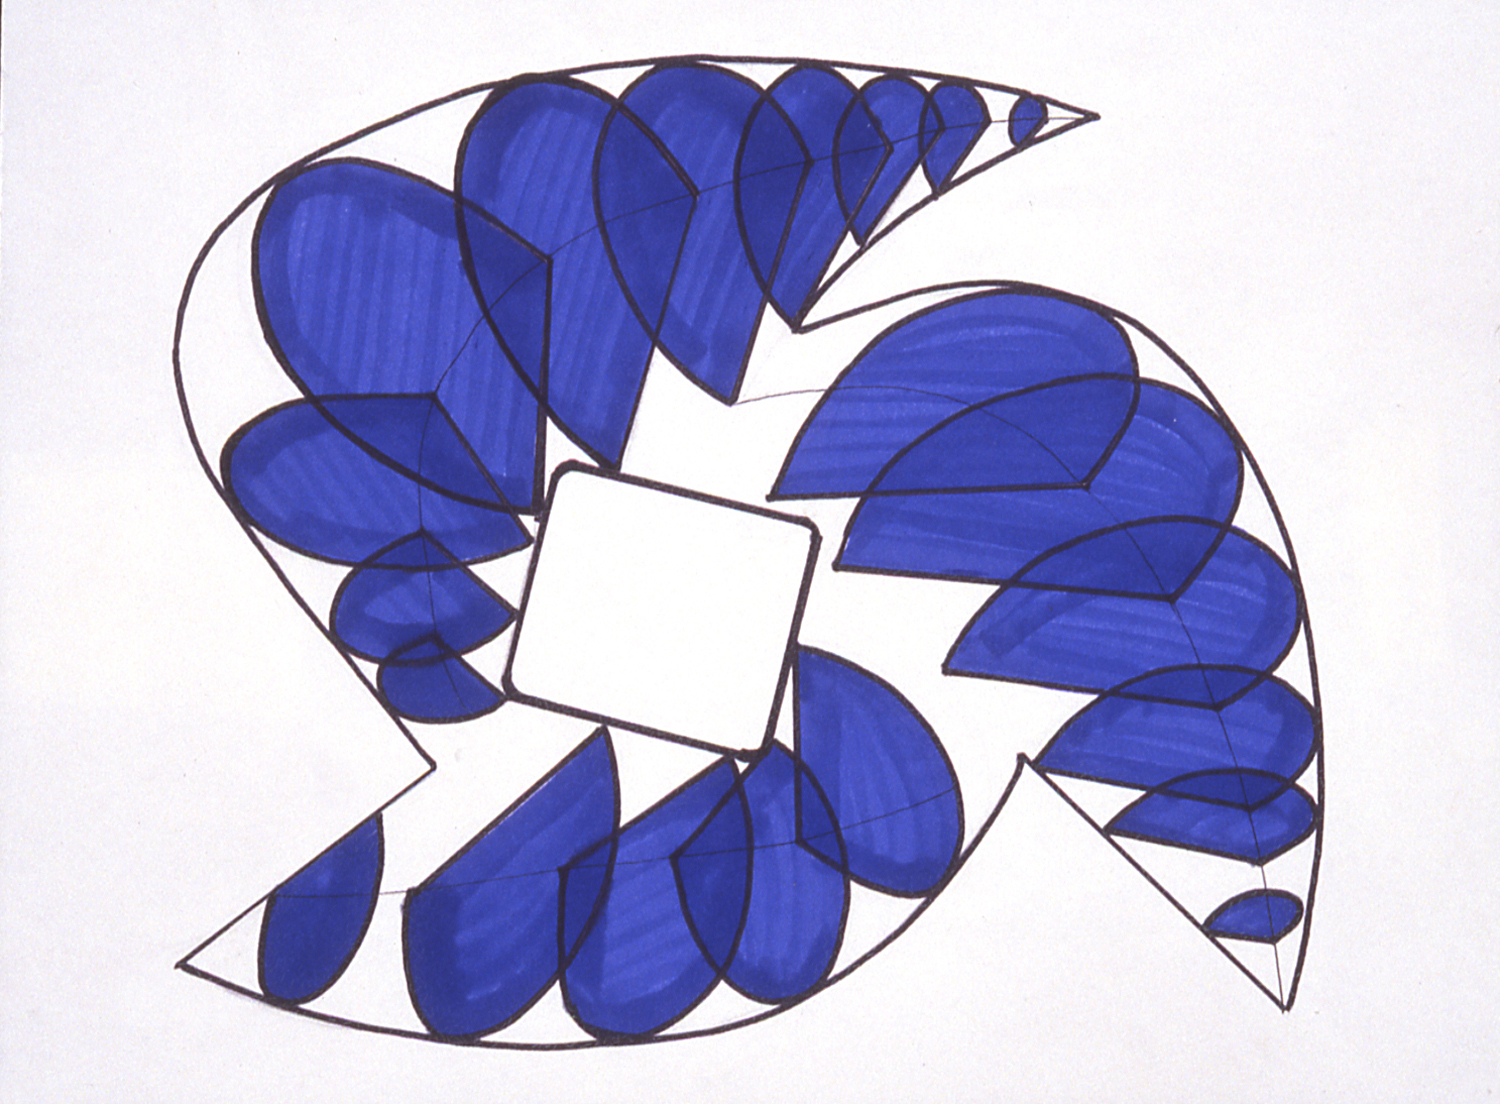 Own Momentum, 1999 Permanent marker on 100% rag paper 14x17 inches / 36x43 cm